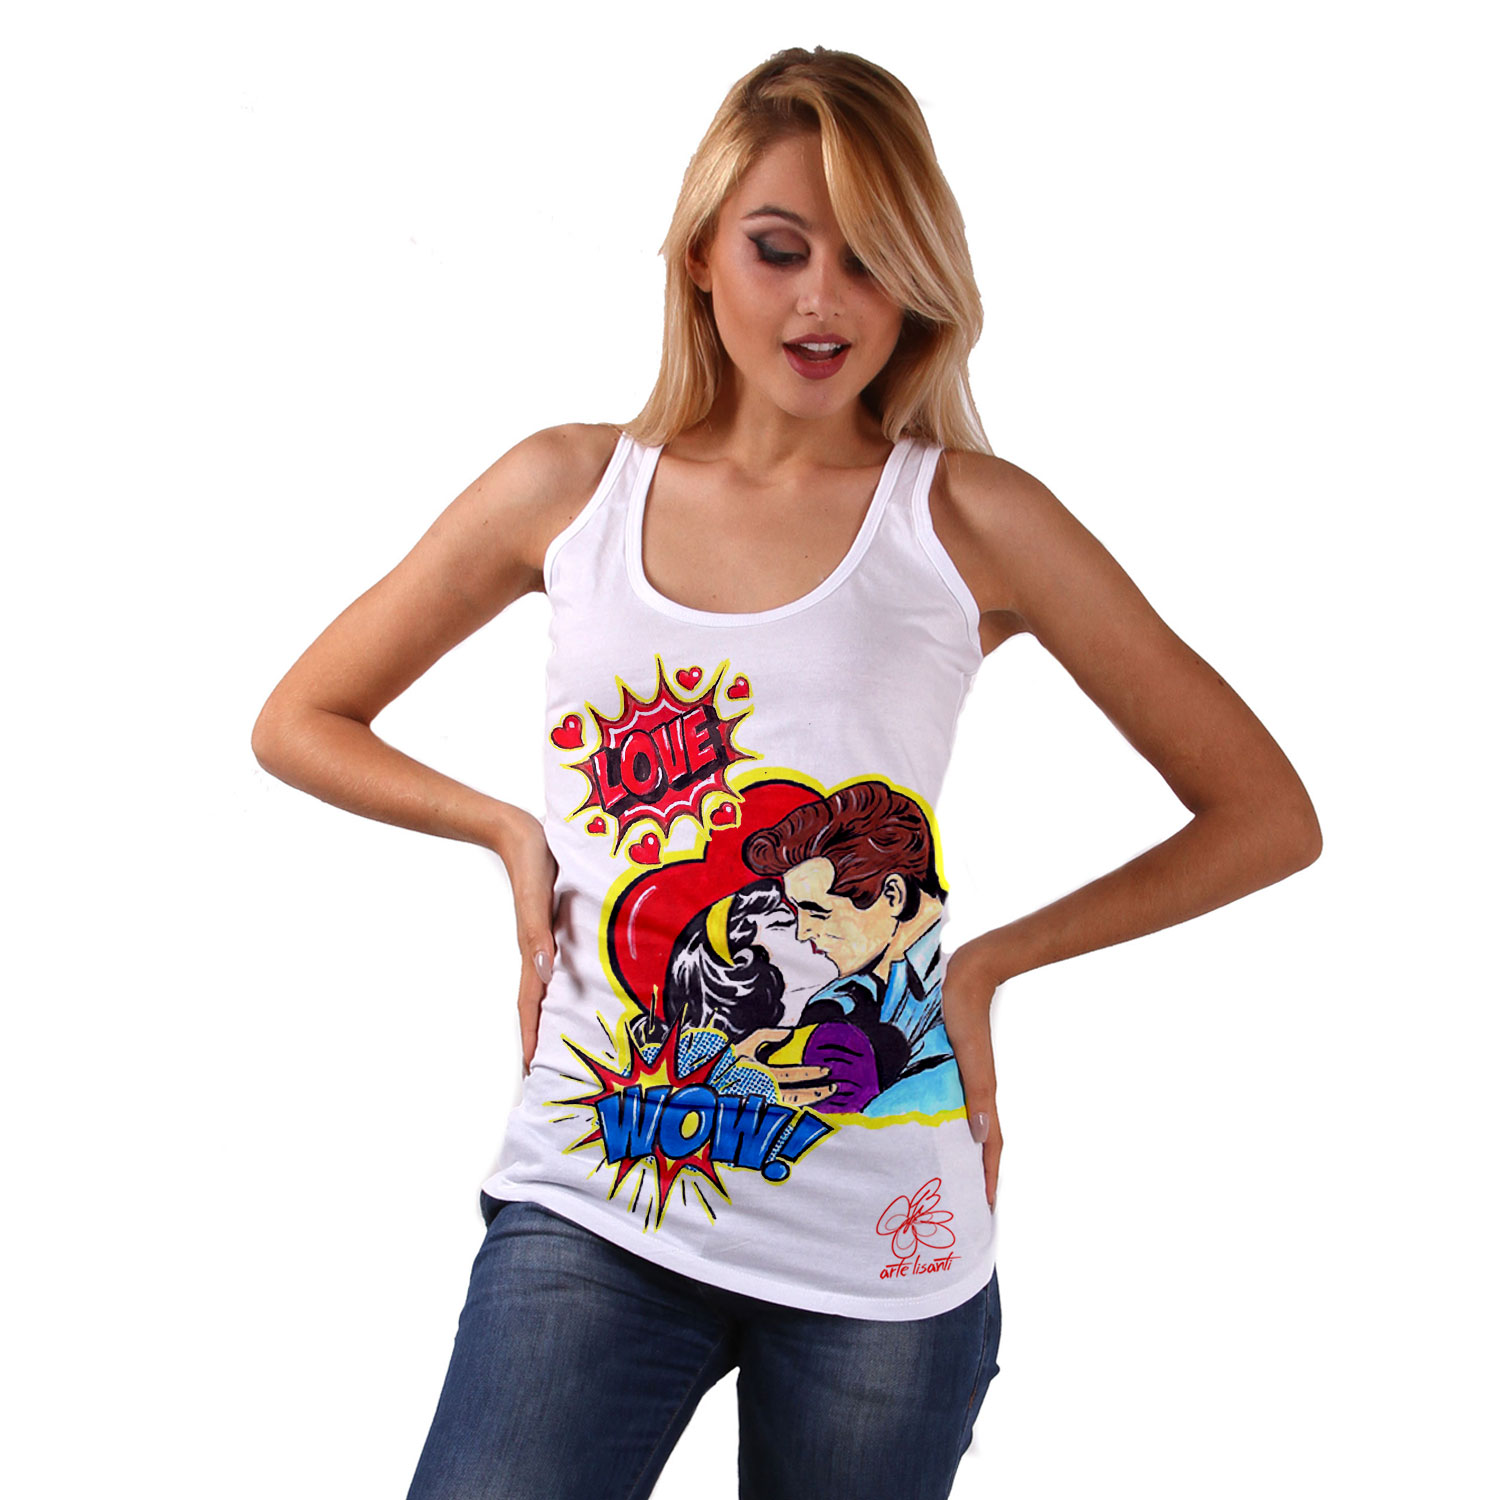 Hand-painted Tank top - Love, tribute to Roy Lichtenstein